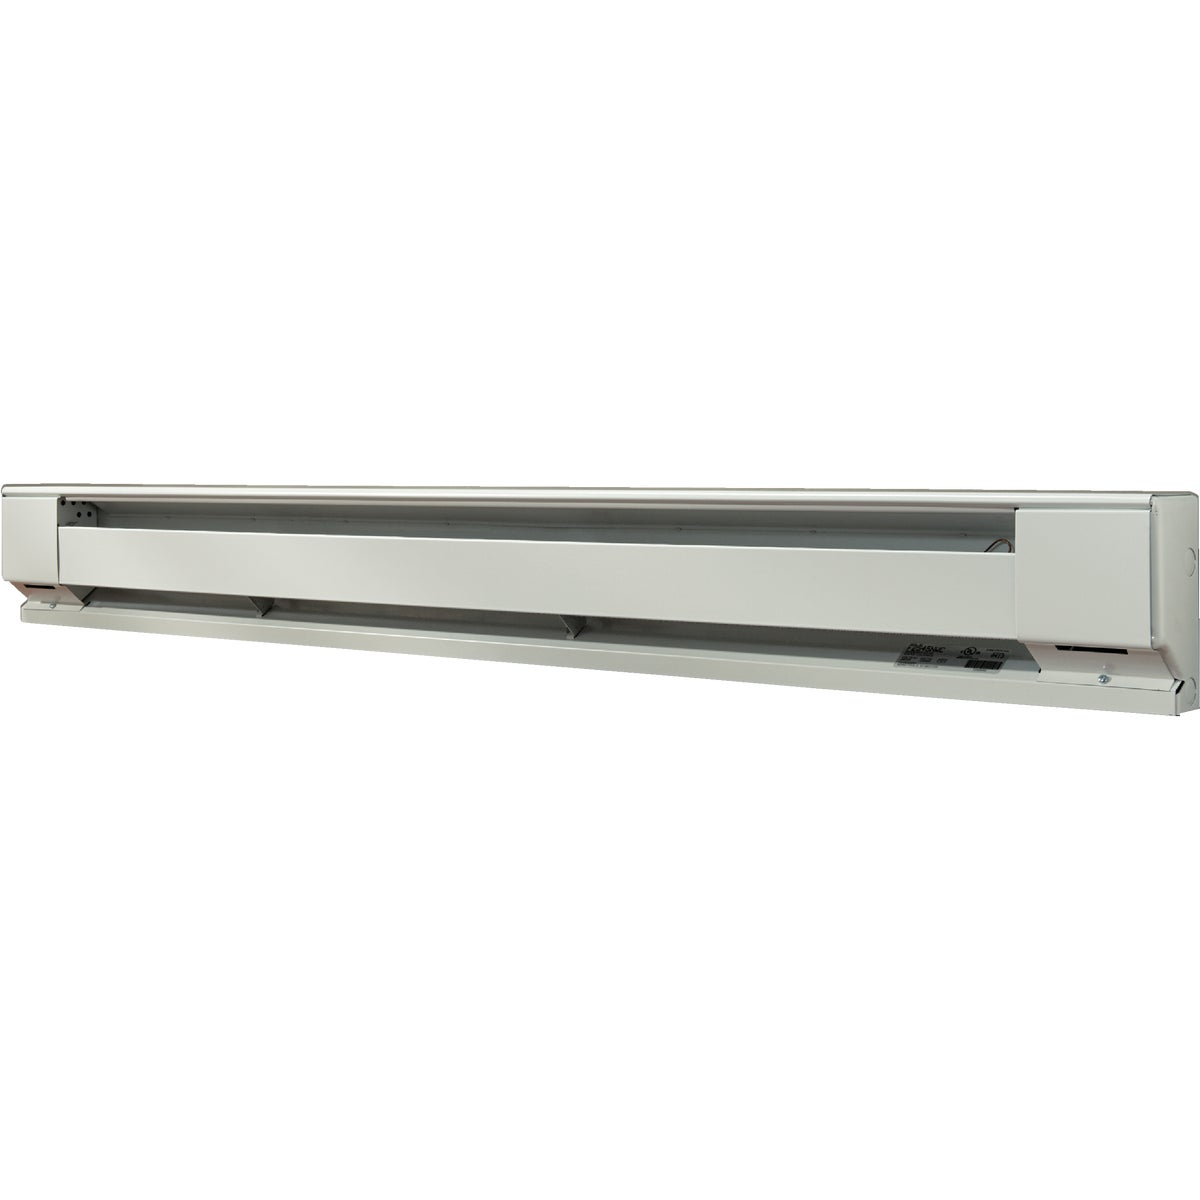 6' BASEBOARD HEATER - F2546 by Fahrenheat Marley